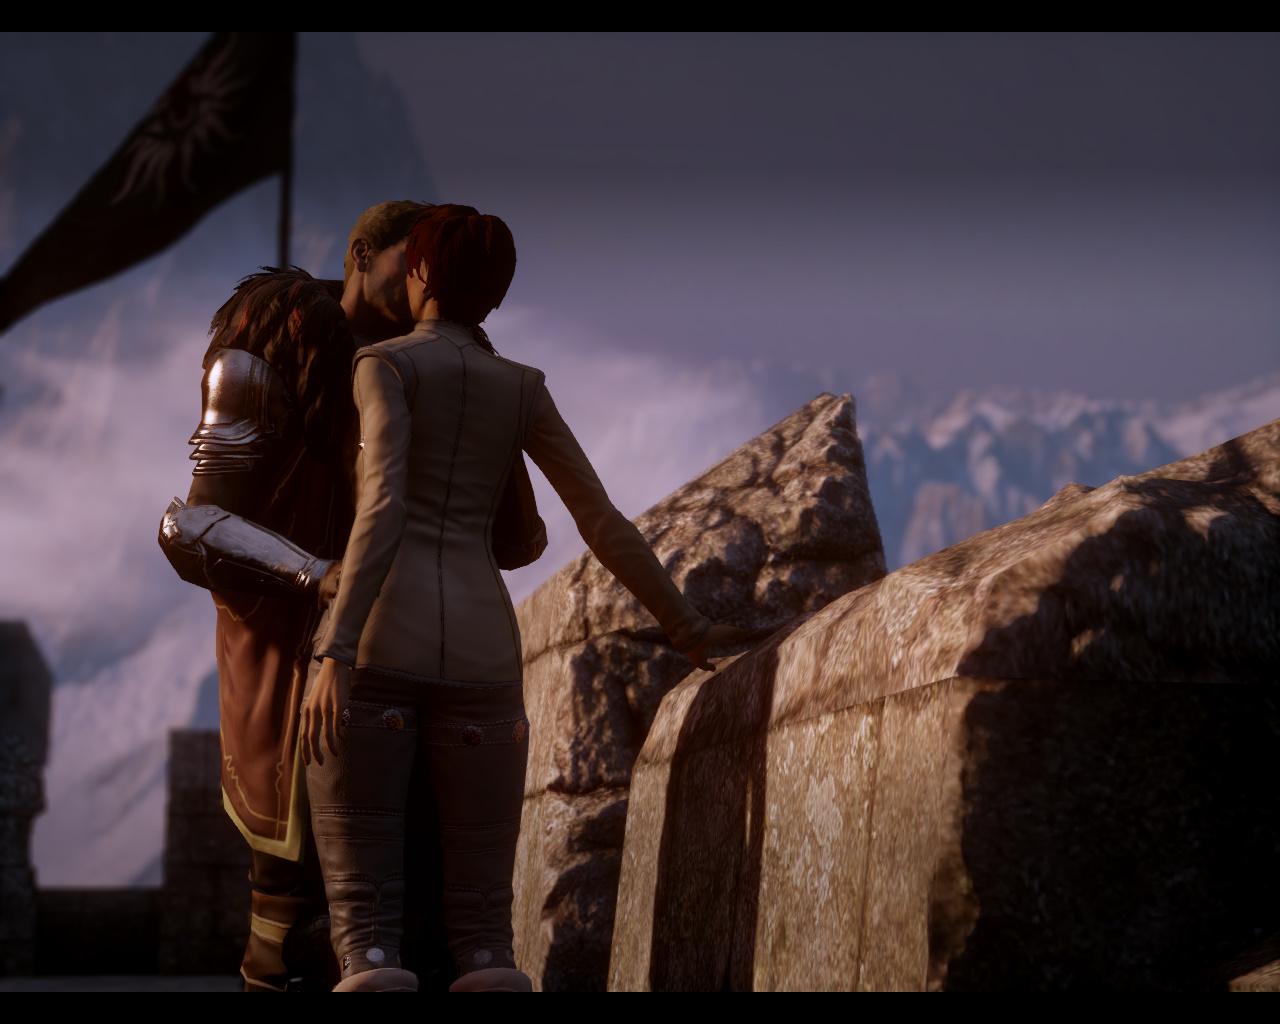 DragonAgeInquisition 2015-02-02 21-46-26-295.jpg